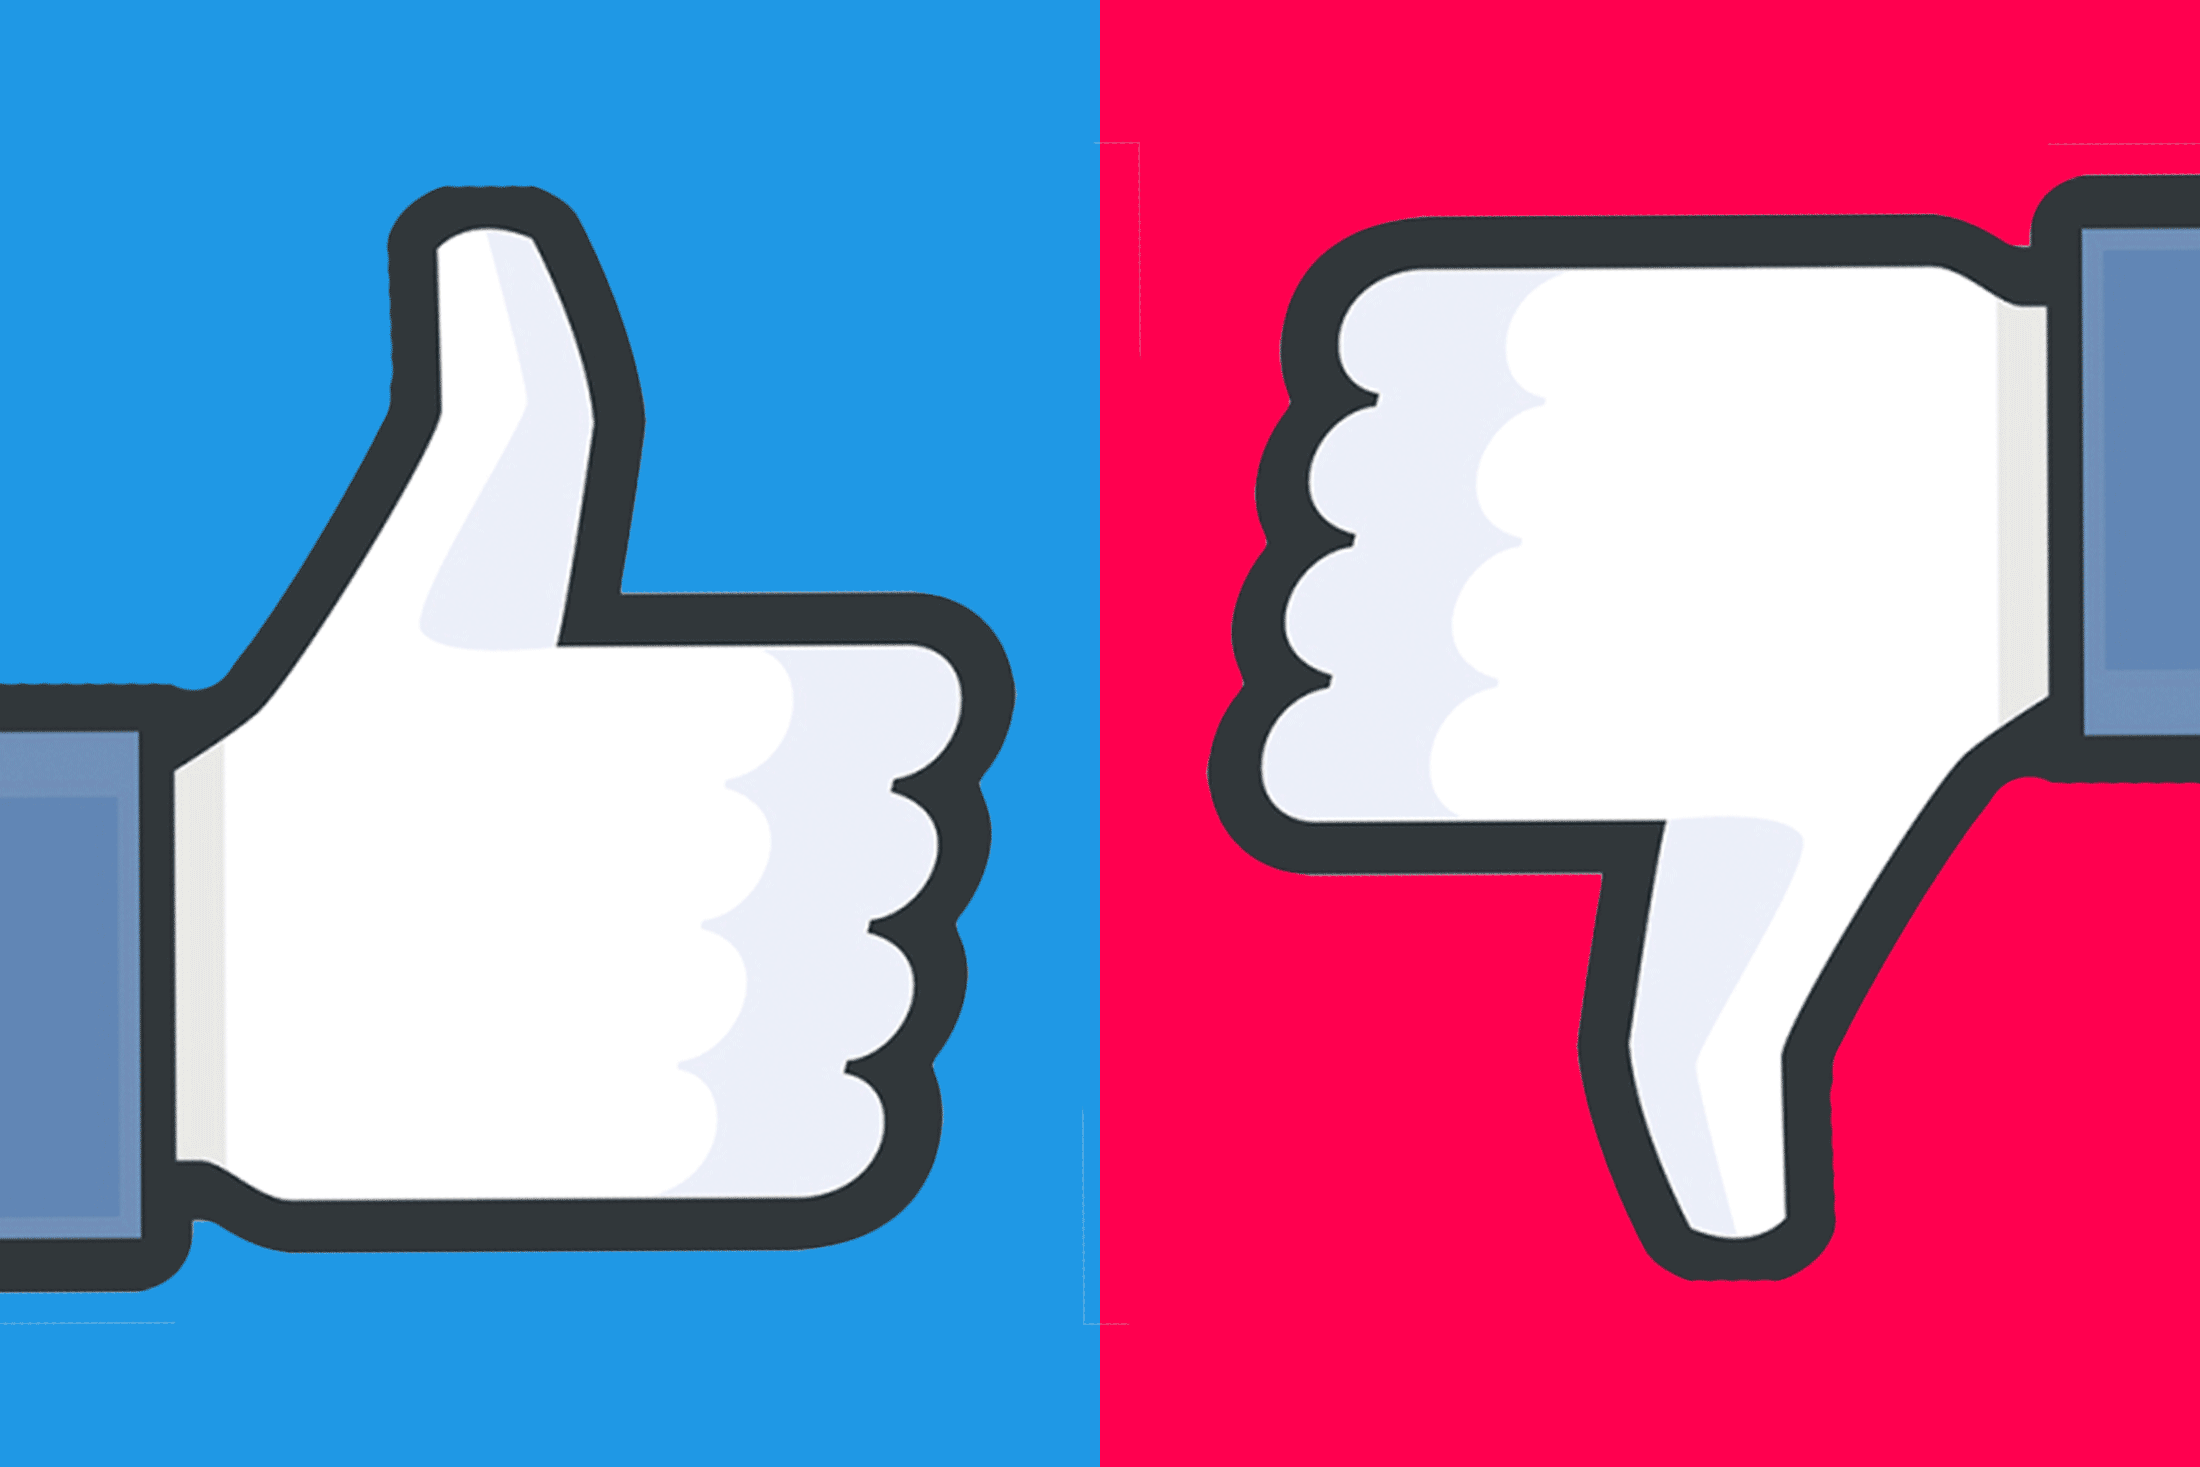 A Facebook thumbs-up and thumbs-down.